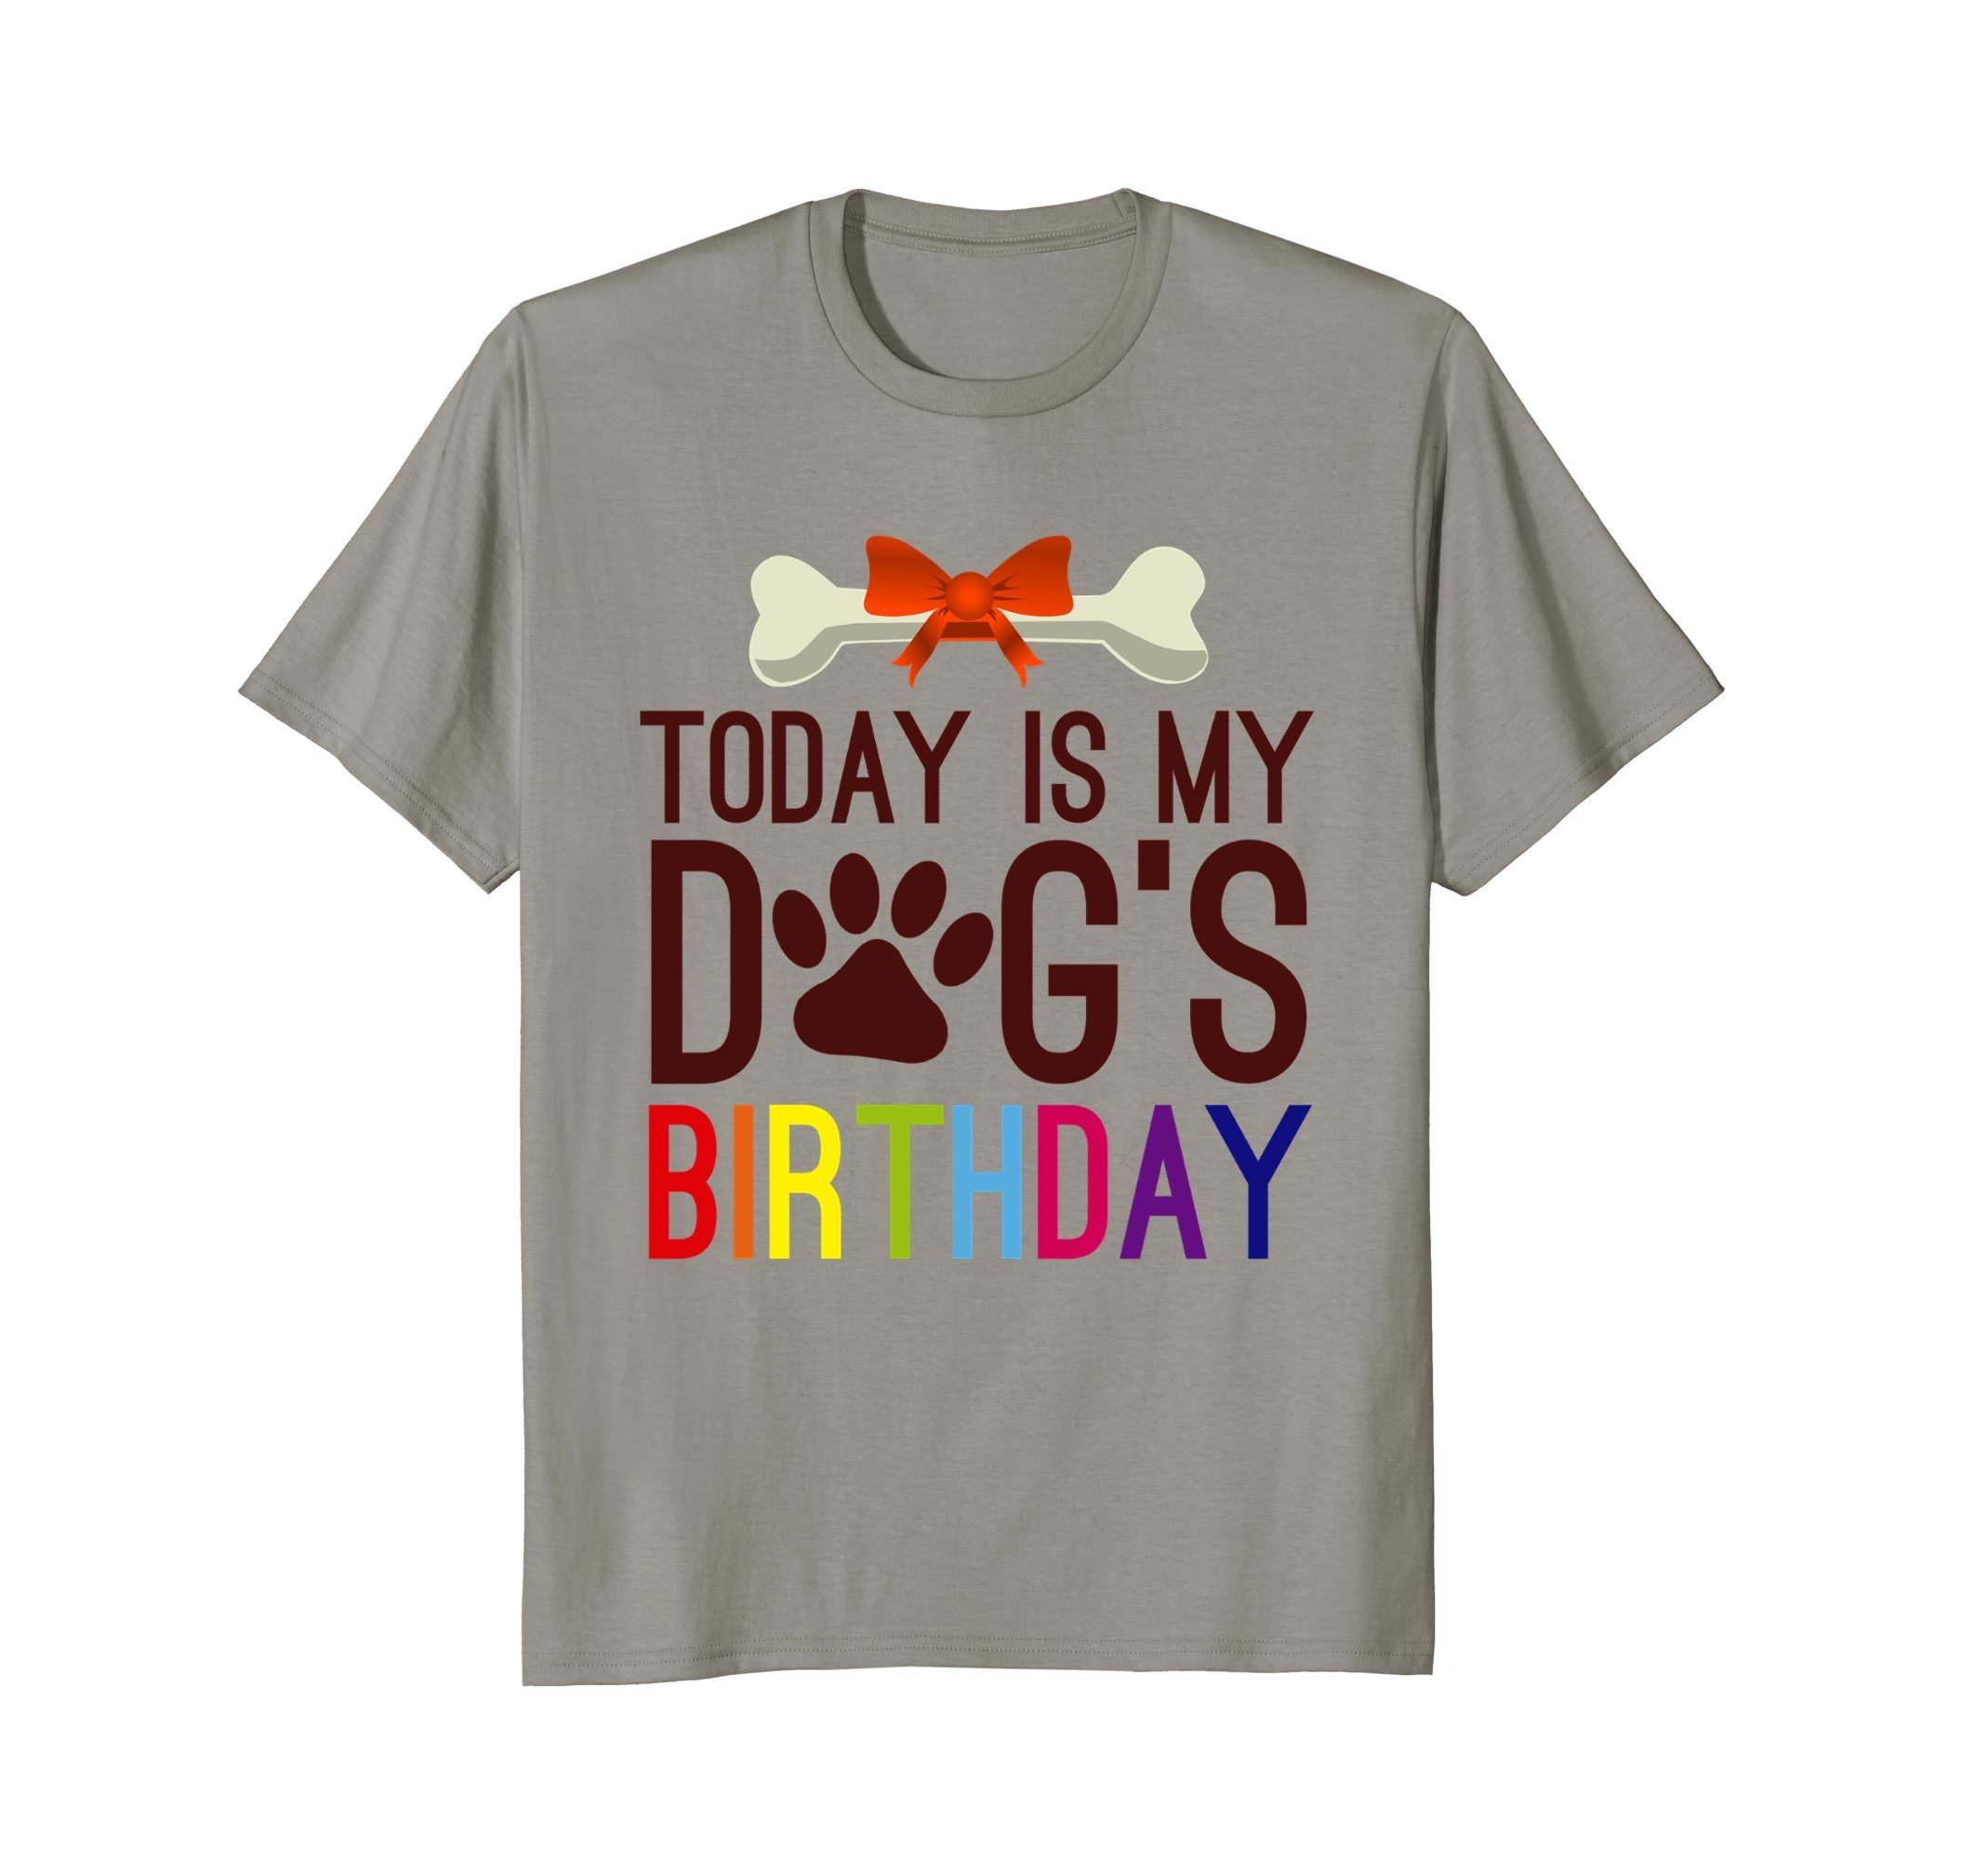 Today is My Dog's Birthday T Shirt for Pet Owner Clothing